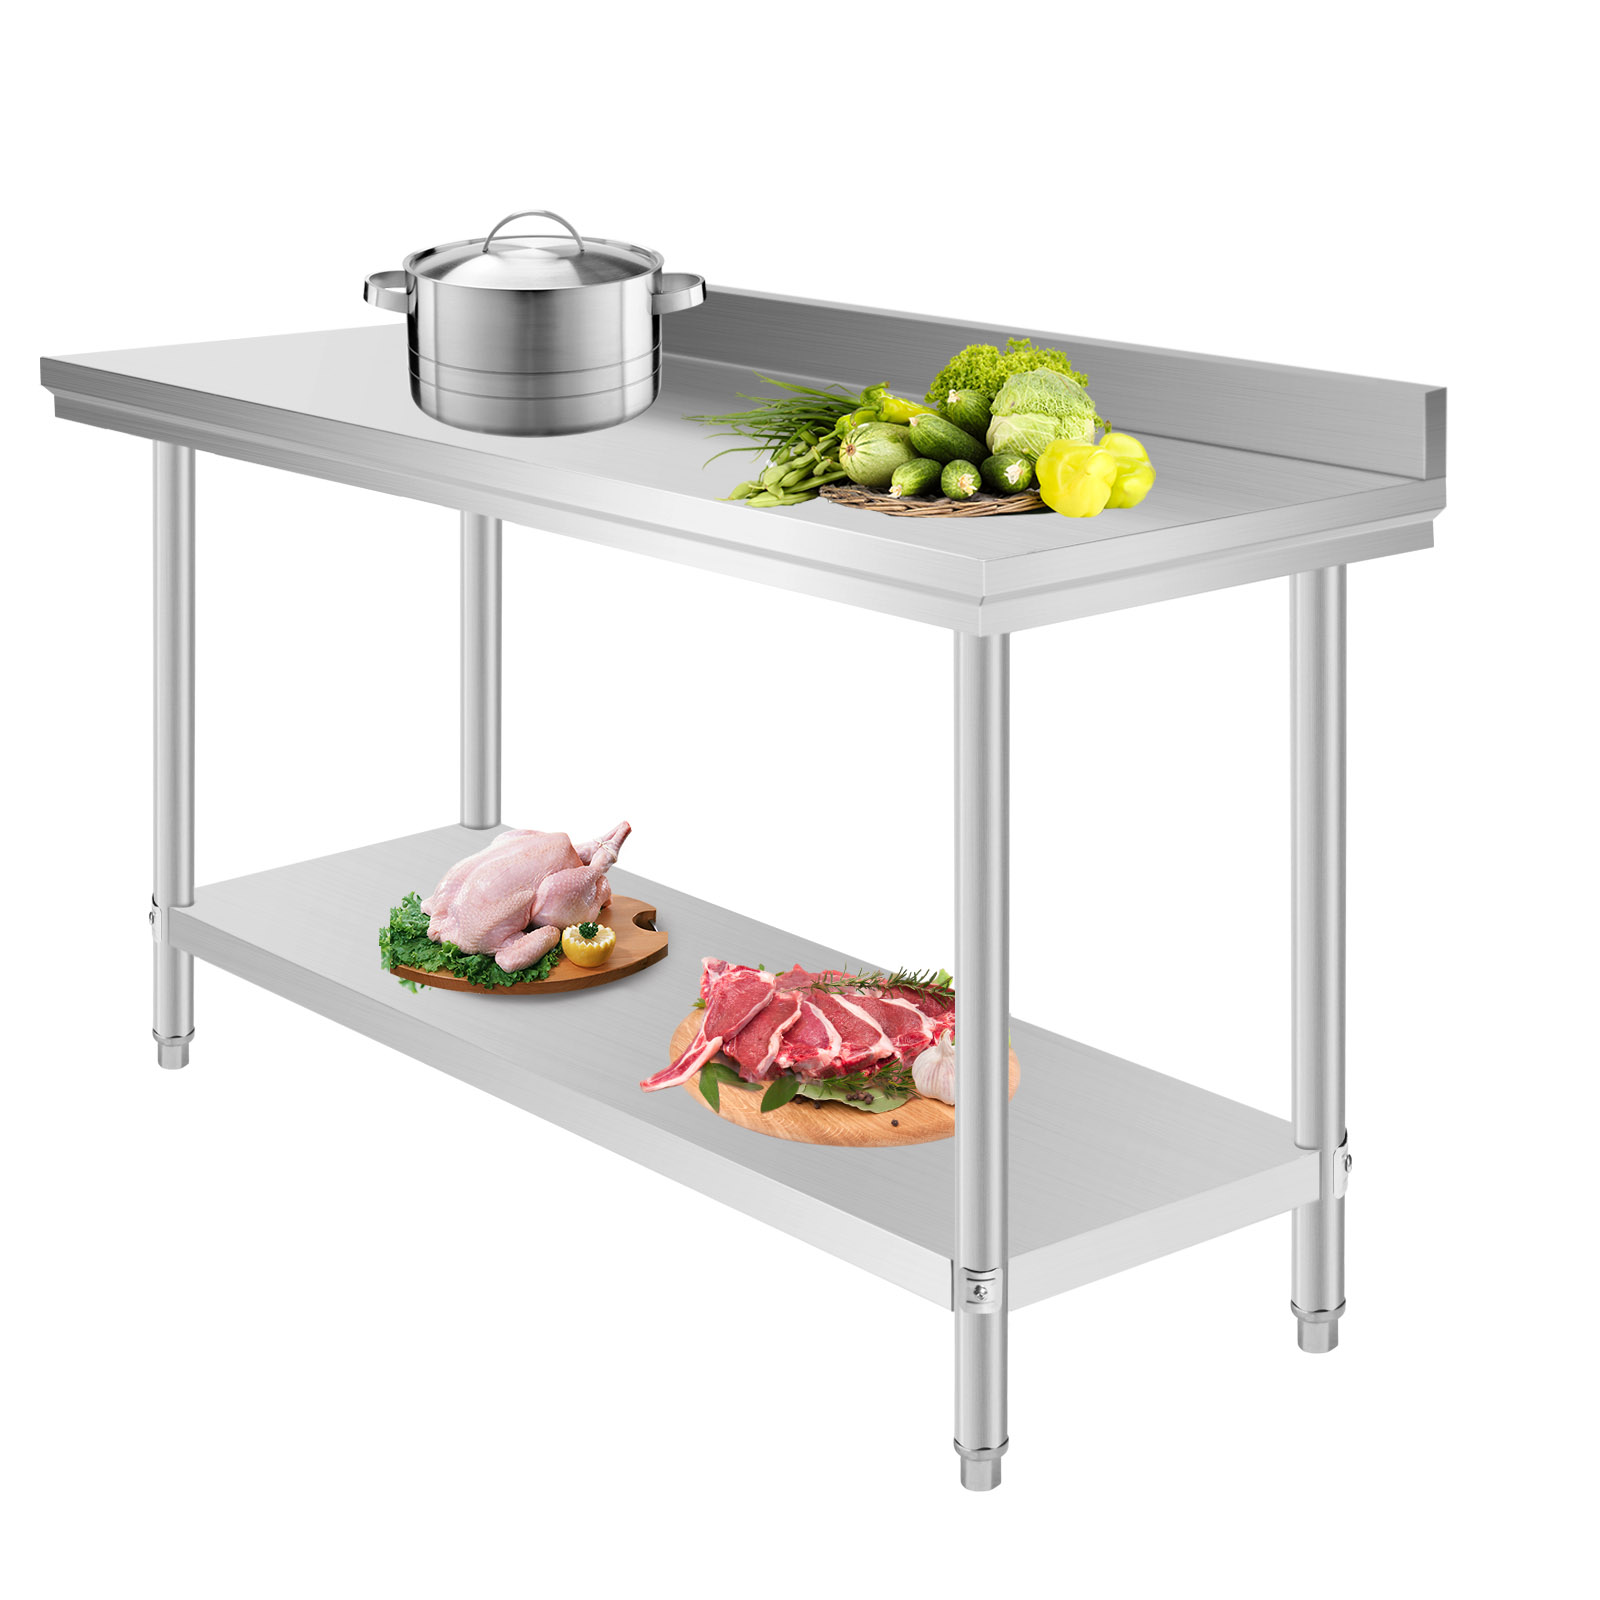 Industrial Kitchen Prep Table: Commercial Stainless Steel Food Work Prep Table 60 X 24